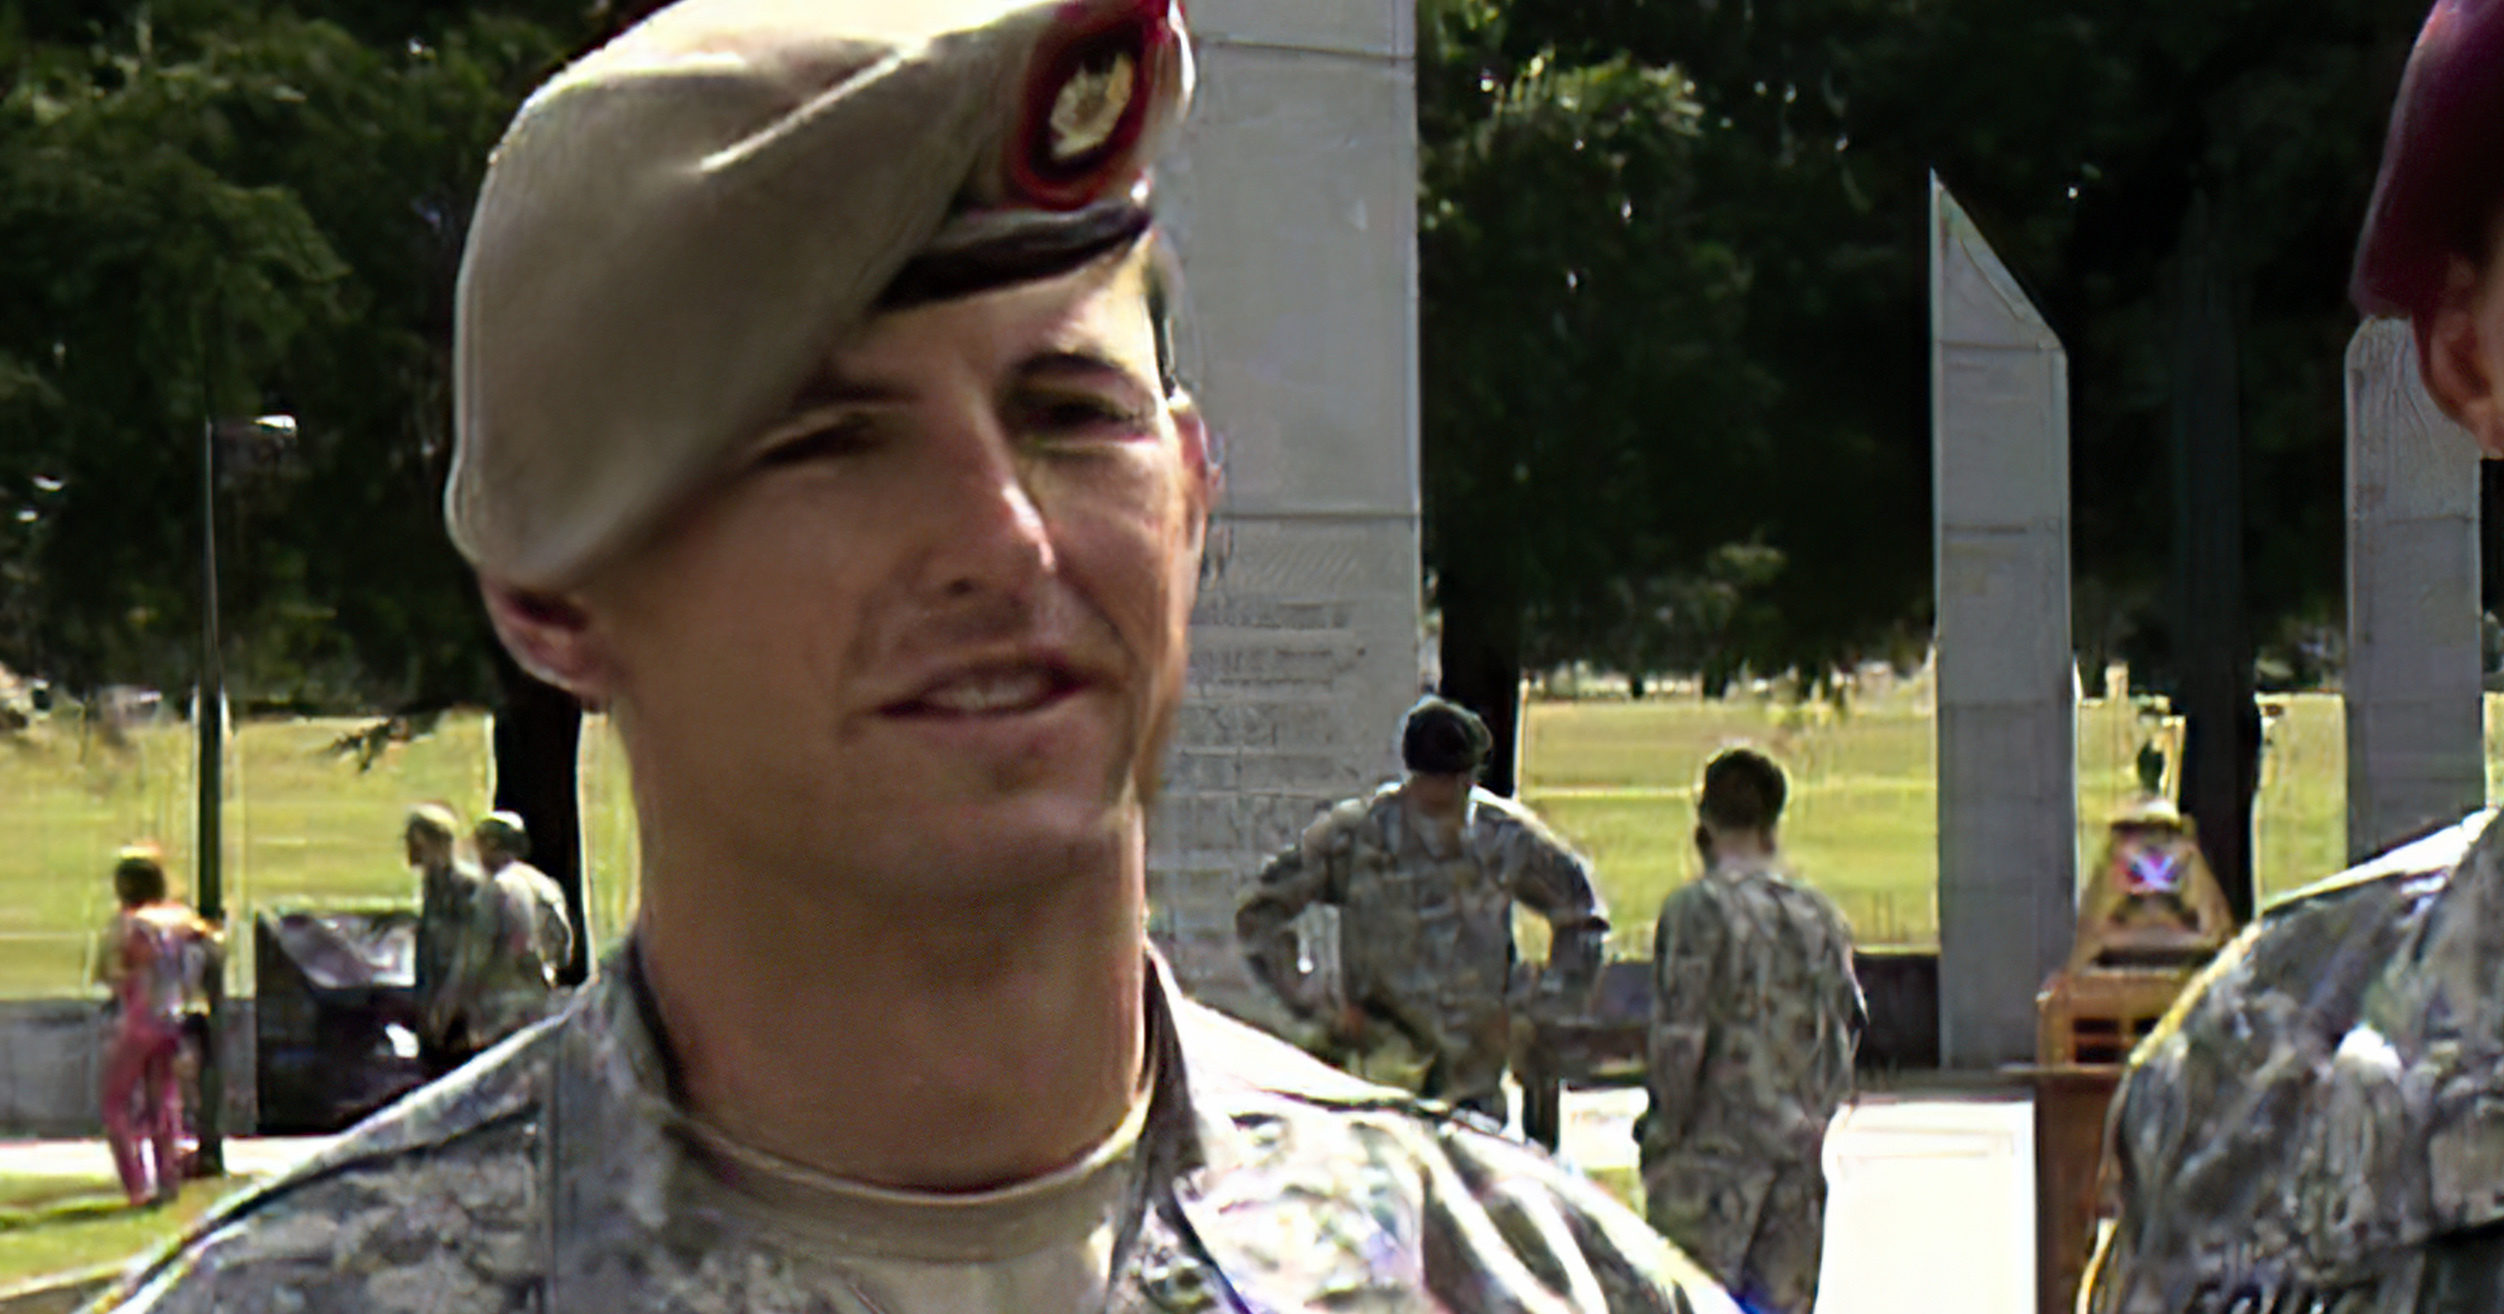 In this image from video provided by the US Army, then-Sgt. 1st Class Thomas Payne is interviewed as a winner of the 2012 Best Ranger competition at Fort Benning, Georgia, on April 16, 2012. Payne will receive the Medal of Honor, the US military's highest honor for valor in combat, for rescuing about 70 hostages who were set to be executed by ISIS militants in Iraq in 2015. Sgt. Maj. Payne will receive the honor in a White House ceremony on the 19th anniversary of the Sept. 11, 2001, terrorist attacks.